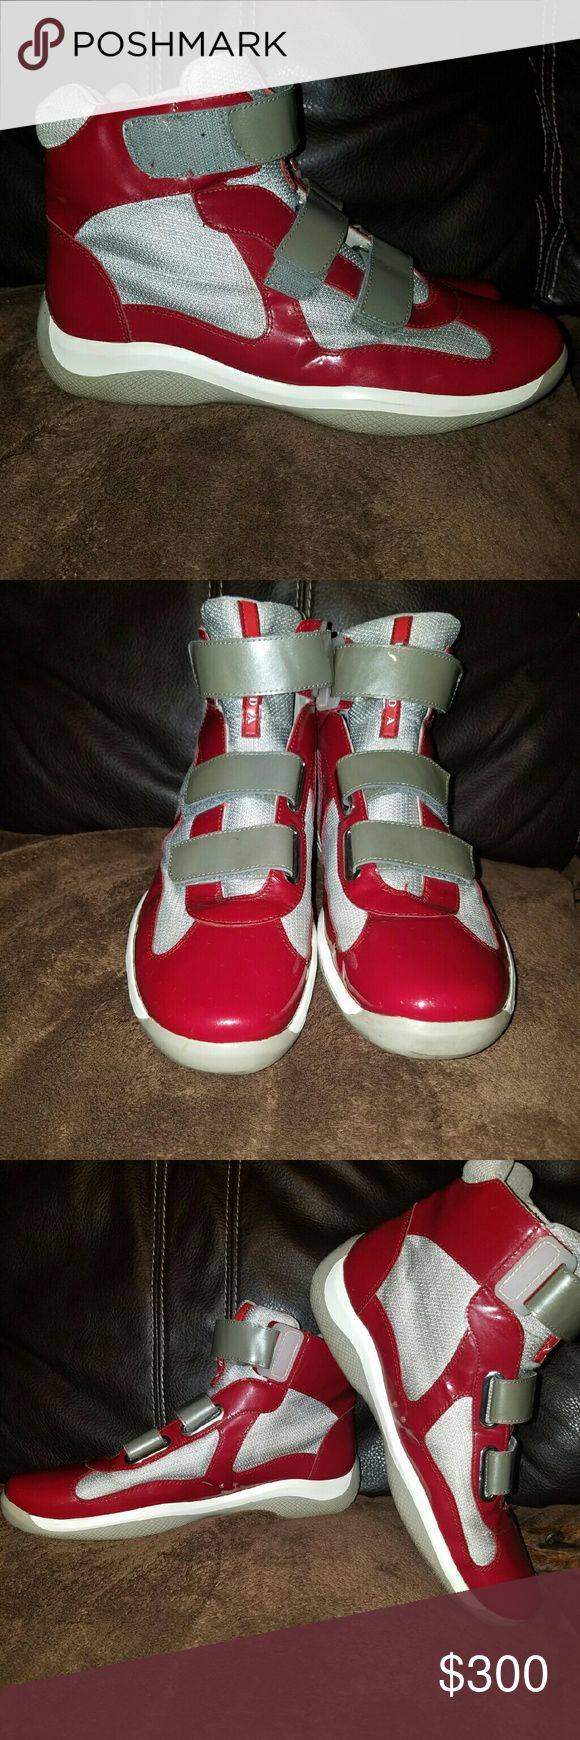 Mens prada high top sneakers Mens high top prada sneakers size 10.5 worn a couple times good condition no box as is Prada Shoes Sneakers